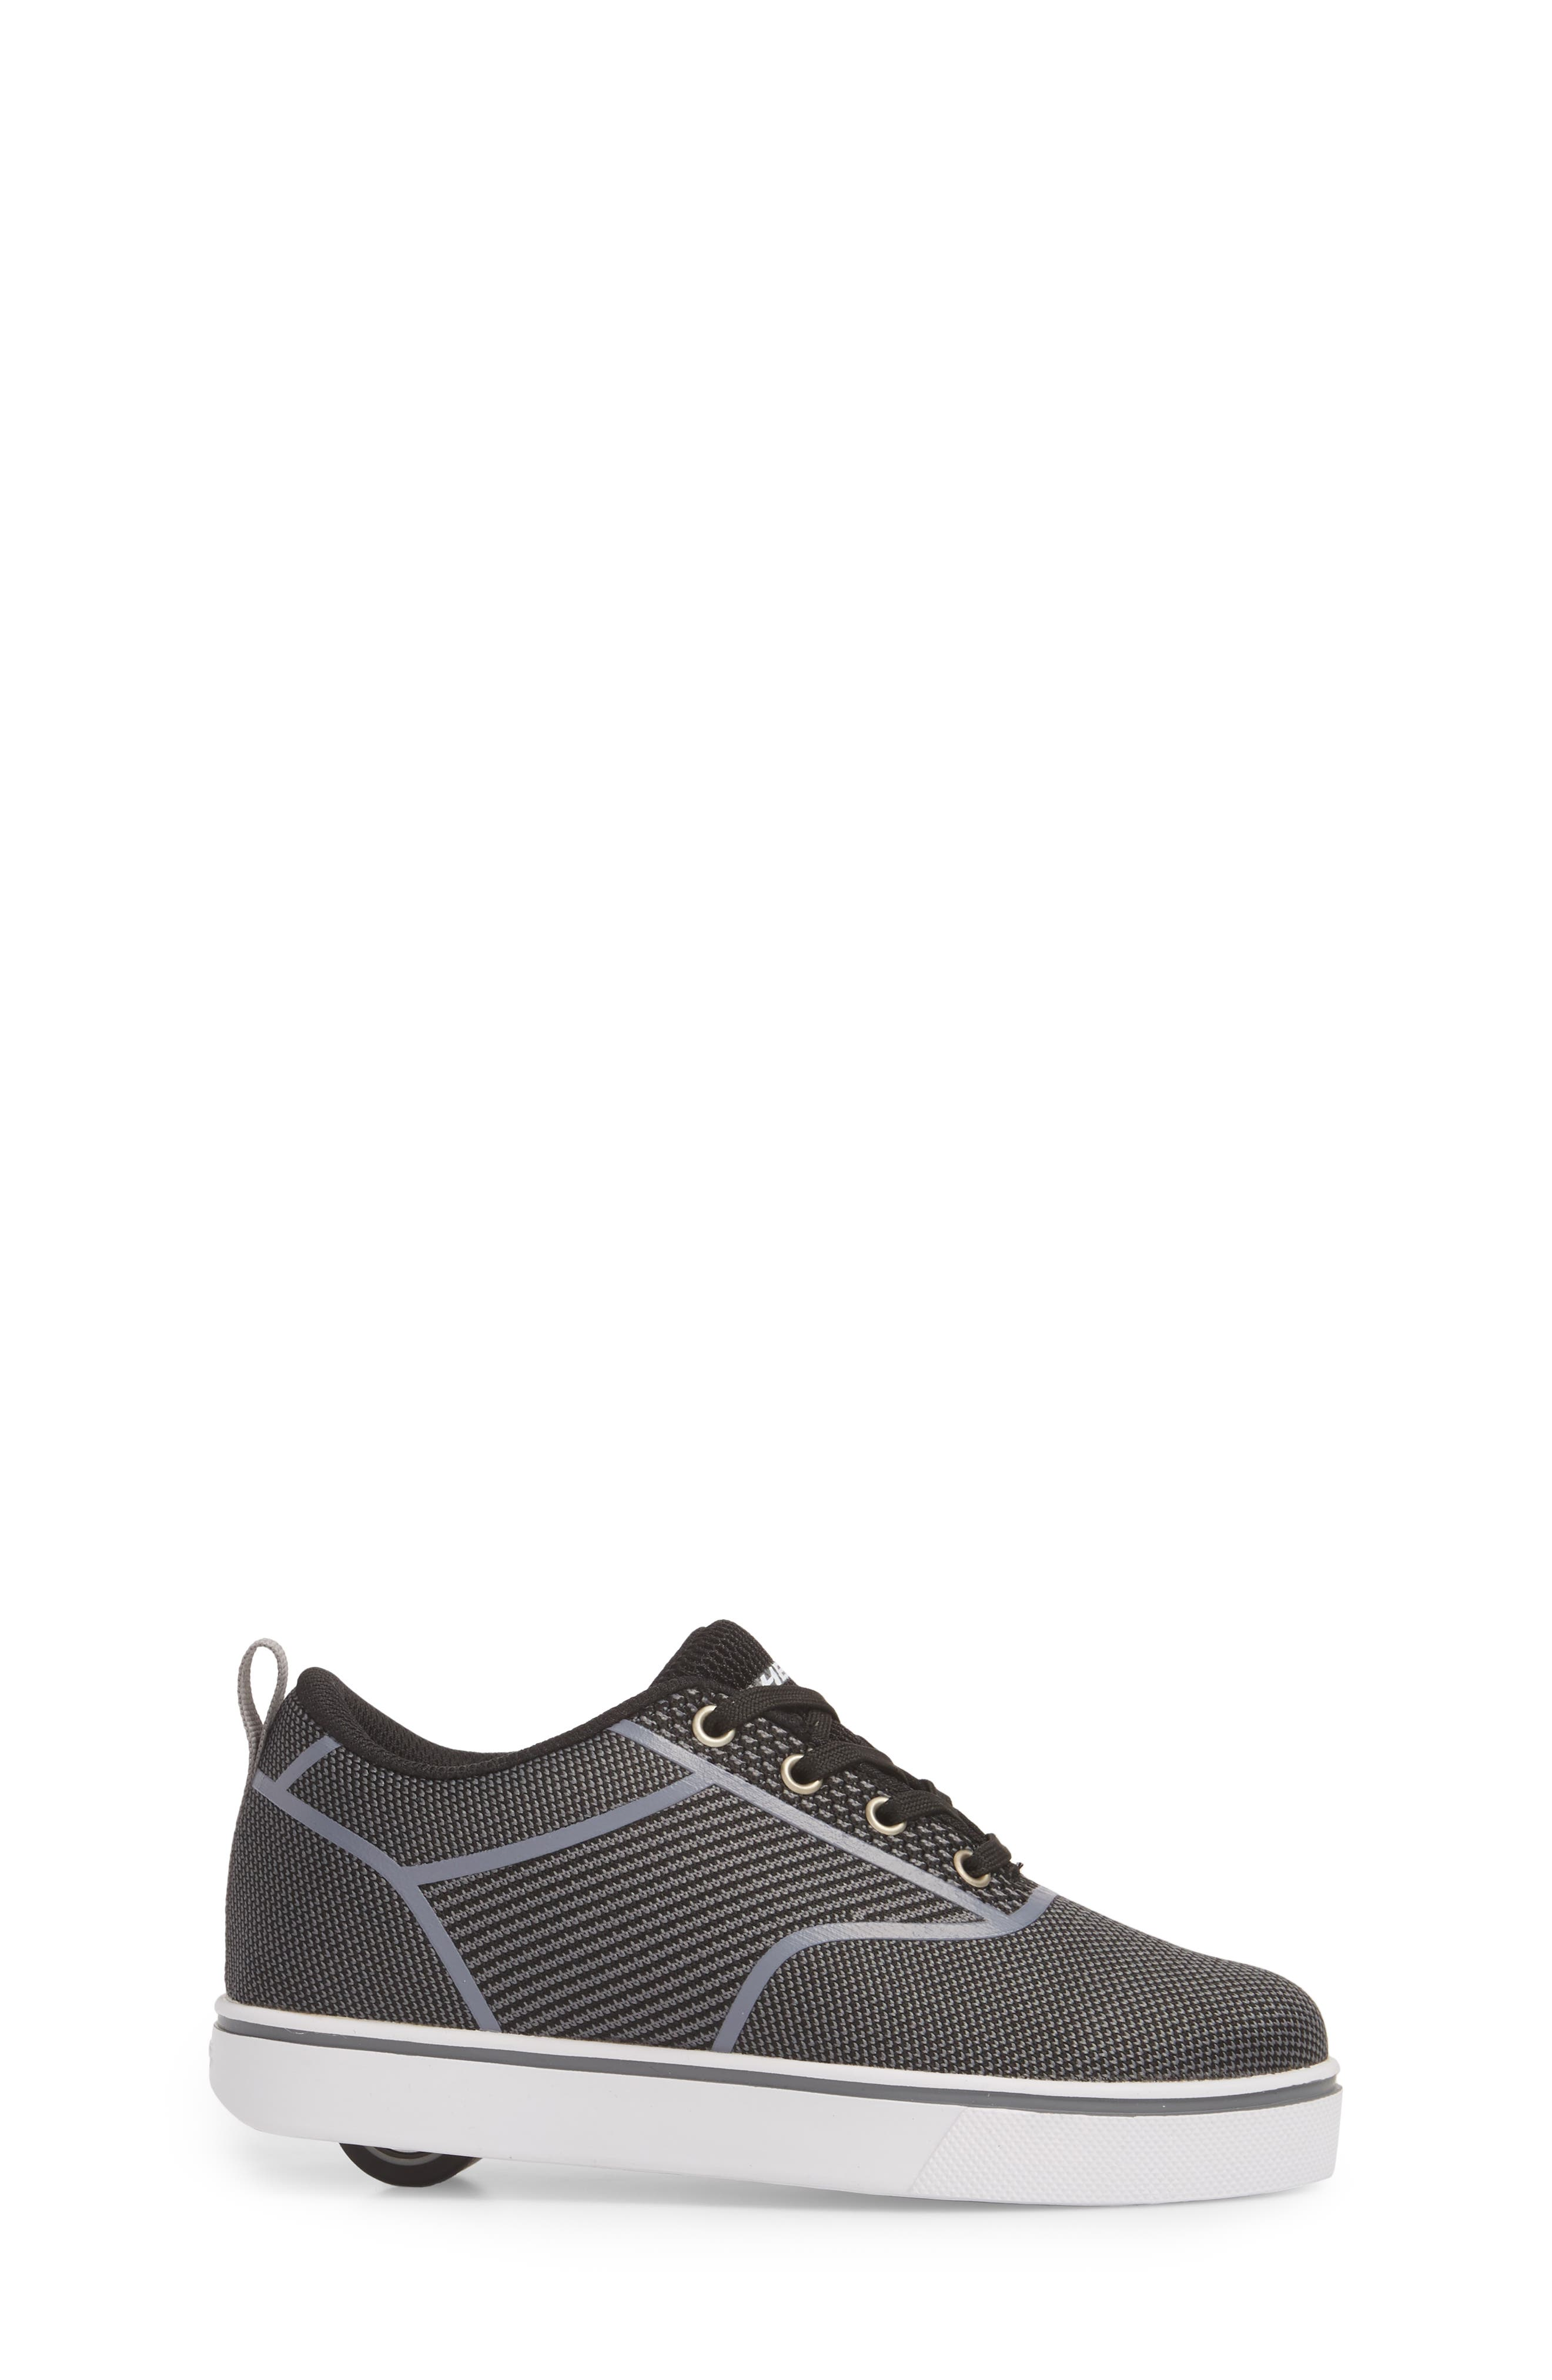 Launch Knit Sneaker,                             Alternate thumbnail 3, color,                             BLACK/ CHARCOAL